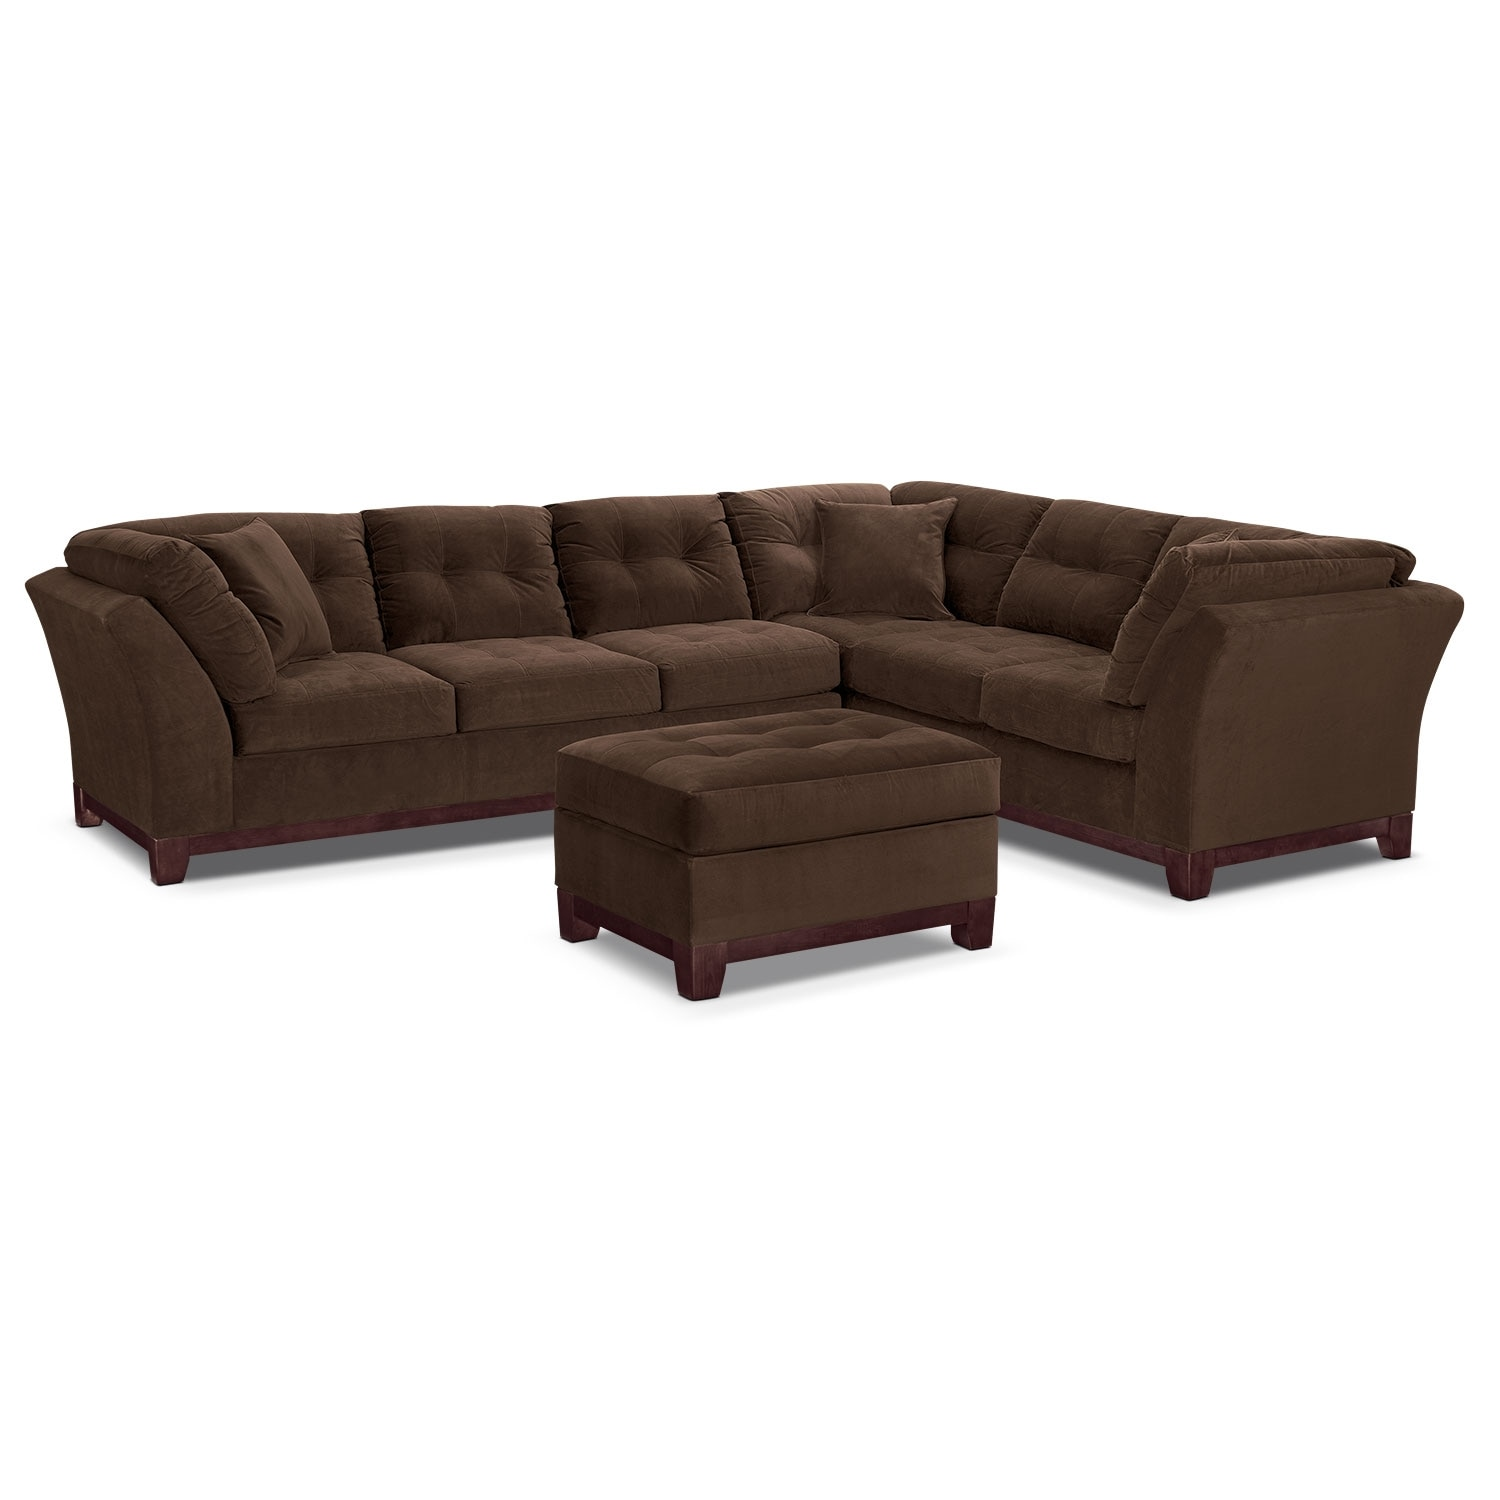 Living Room Furniture - Solace Chocolate II 2 Pc. Sectional (Reverse) and Ottoman